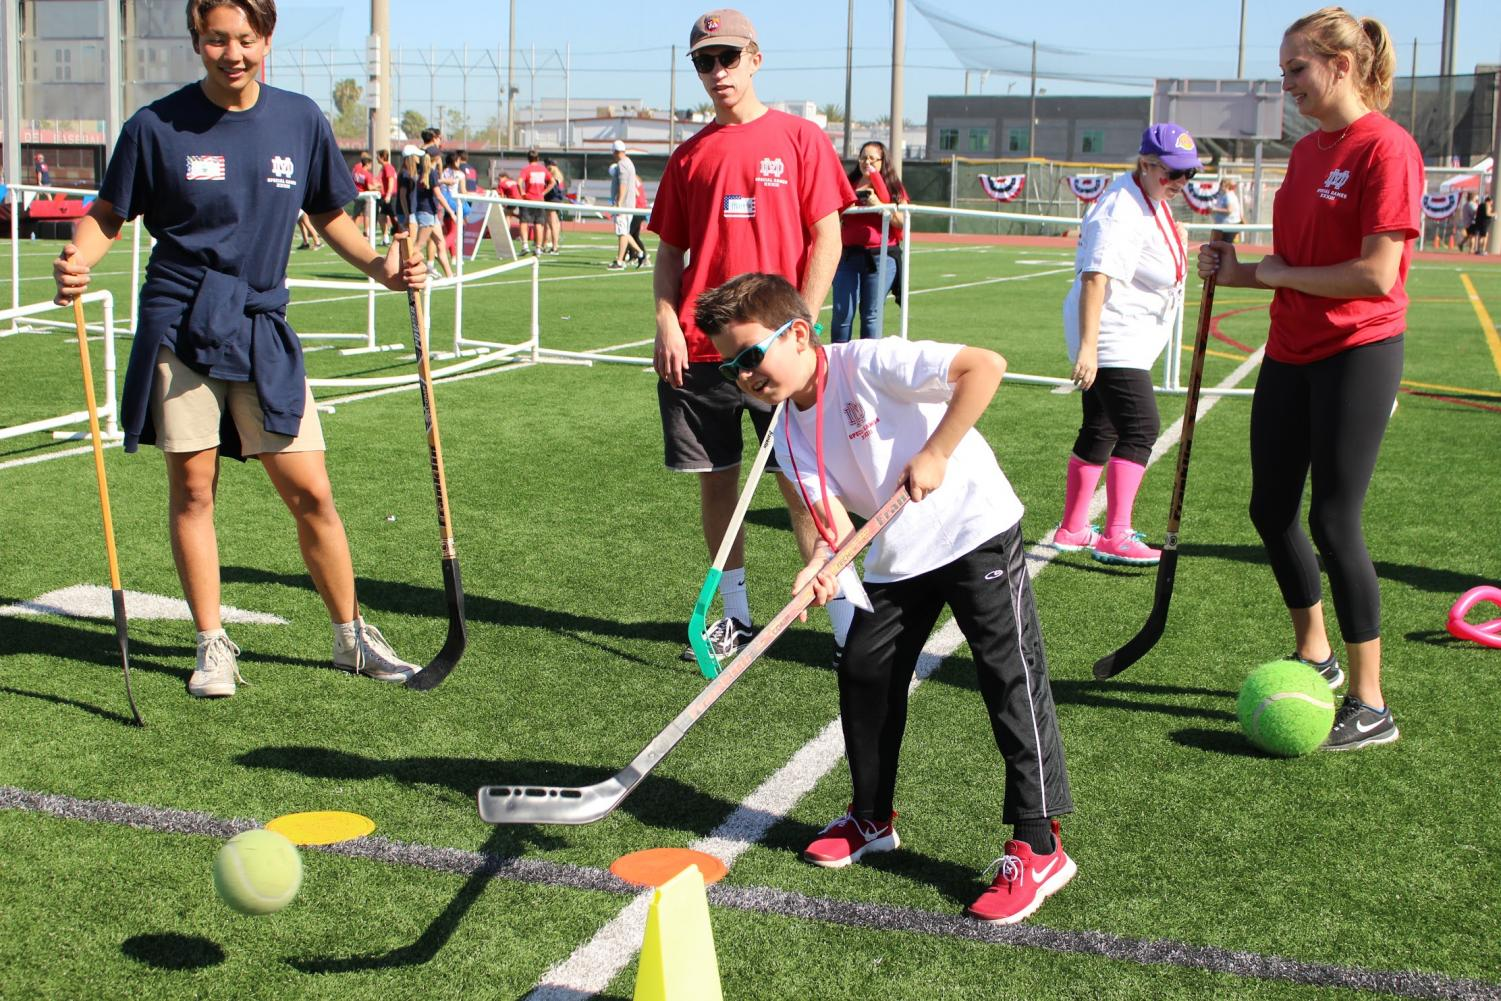 HOCKEY+DRIBBLE%3A+Each+year+the+activity+options+continue+to+change+and+expand.+From+t-ball%2C+to+basketball+and+bowling%2C+a+variety+of+games%2Fsports+are+offered+to+fit+the+interests+of+all+athletes.++I%27m+looking+forward+to+seeing+some+of+our+updates+and+activities+this+year%2C%22+McPherson+said.